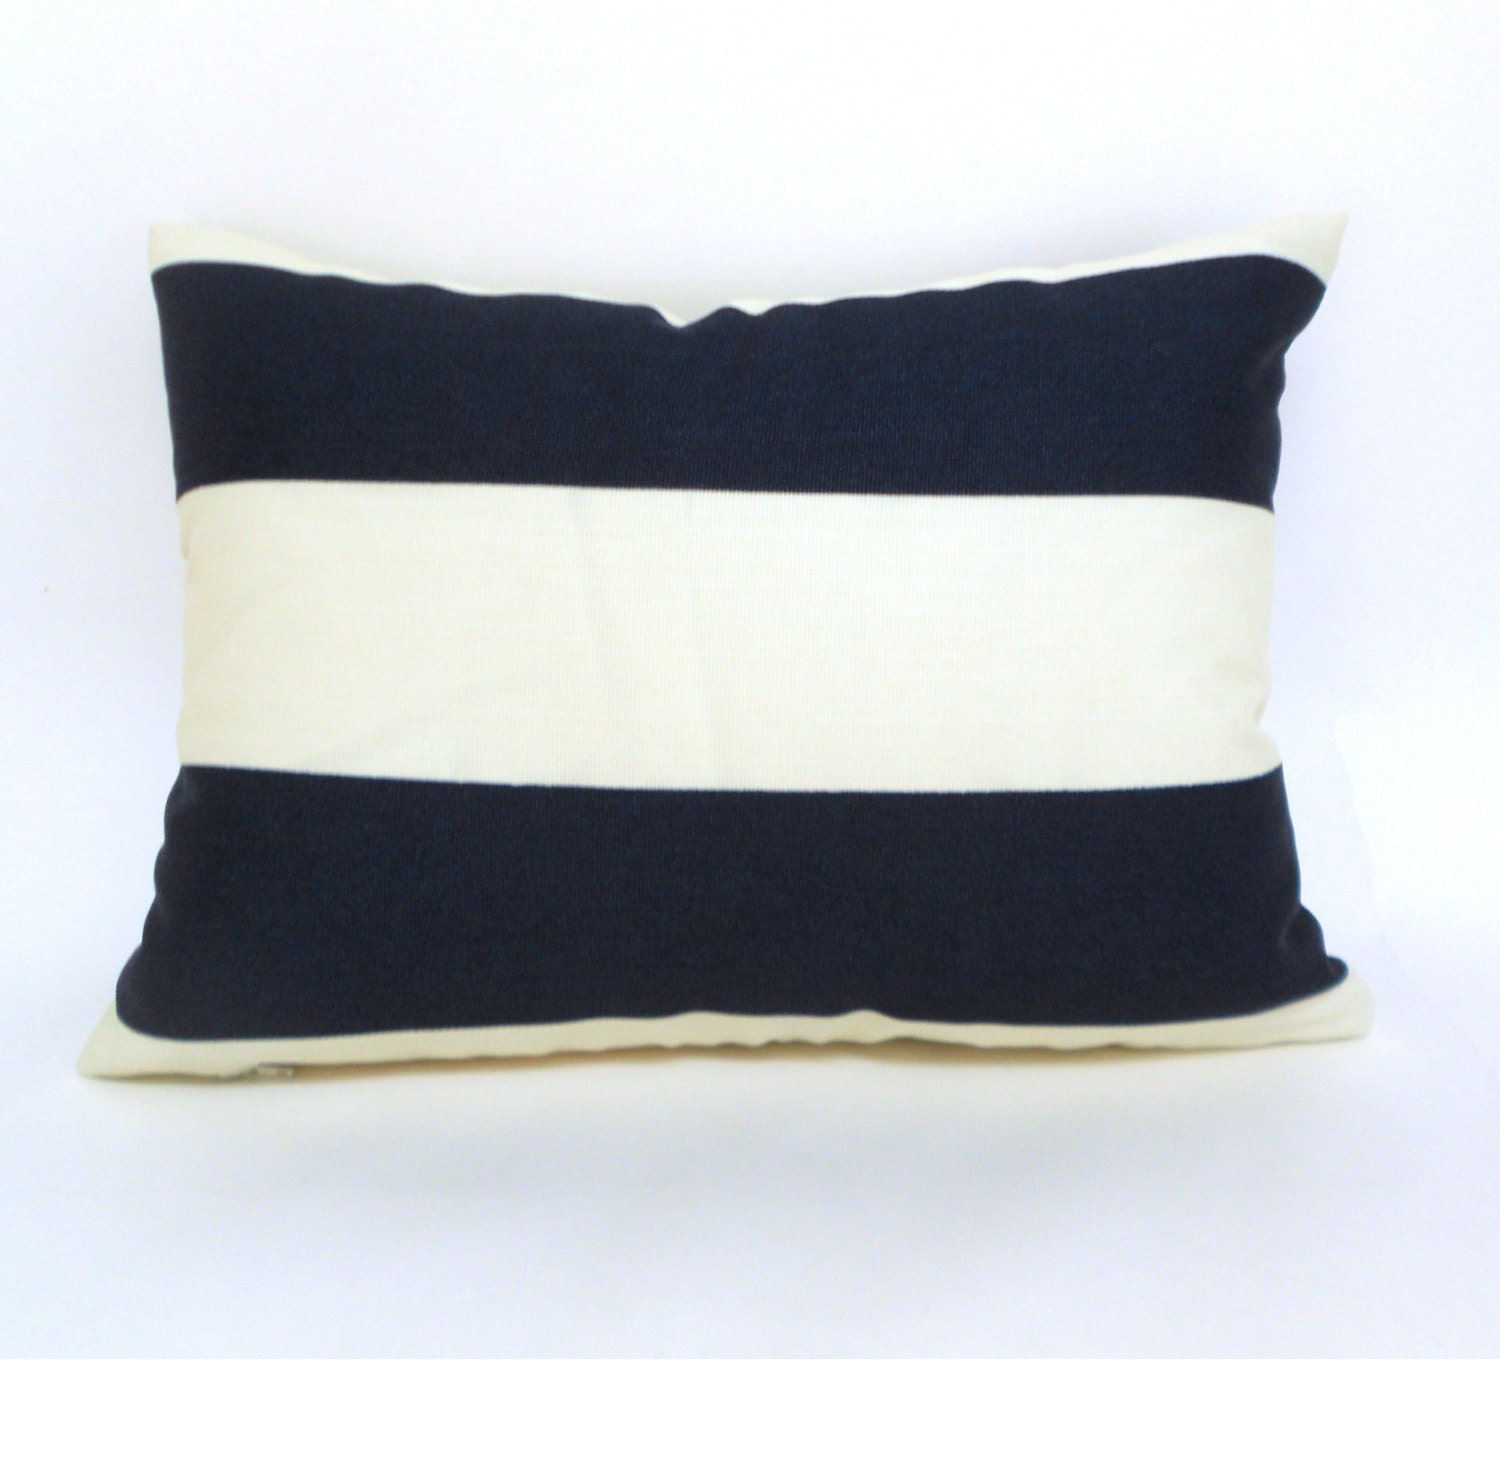 Decorative Outdoor Lumbar Pillows : Outdoor Lumbar Pillow Cover ANY SIZE Decorative Pillow Cover